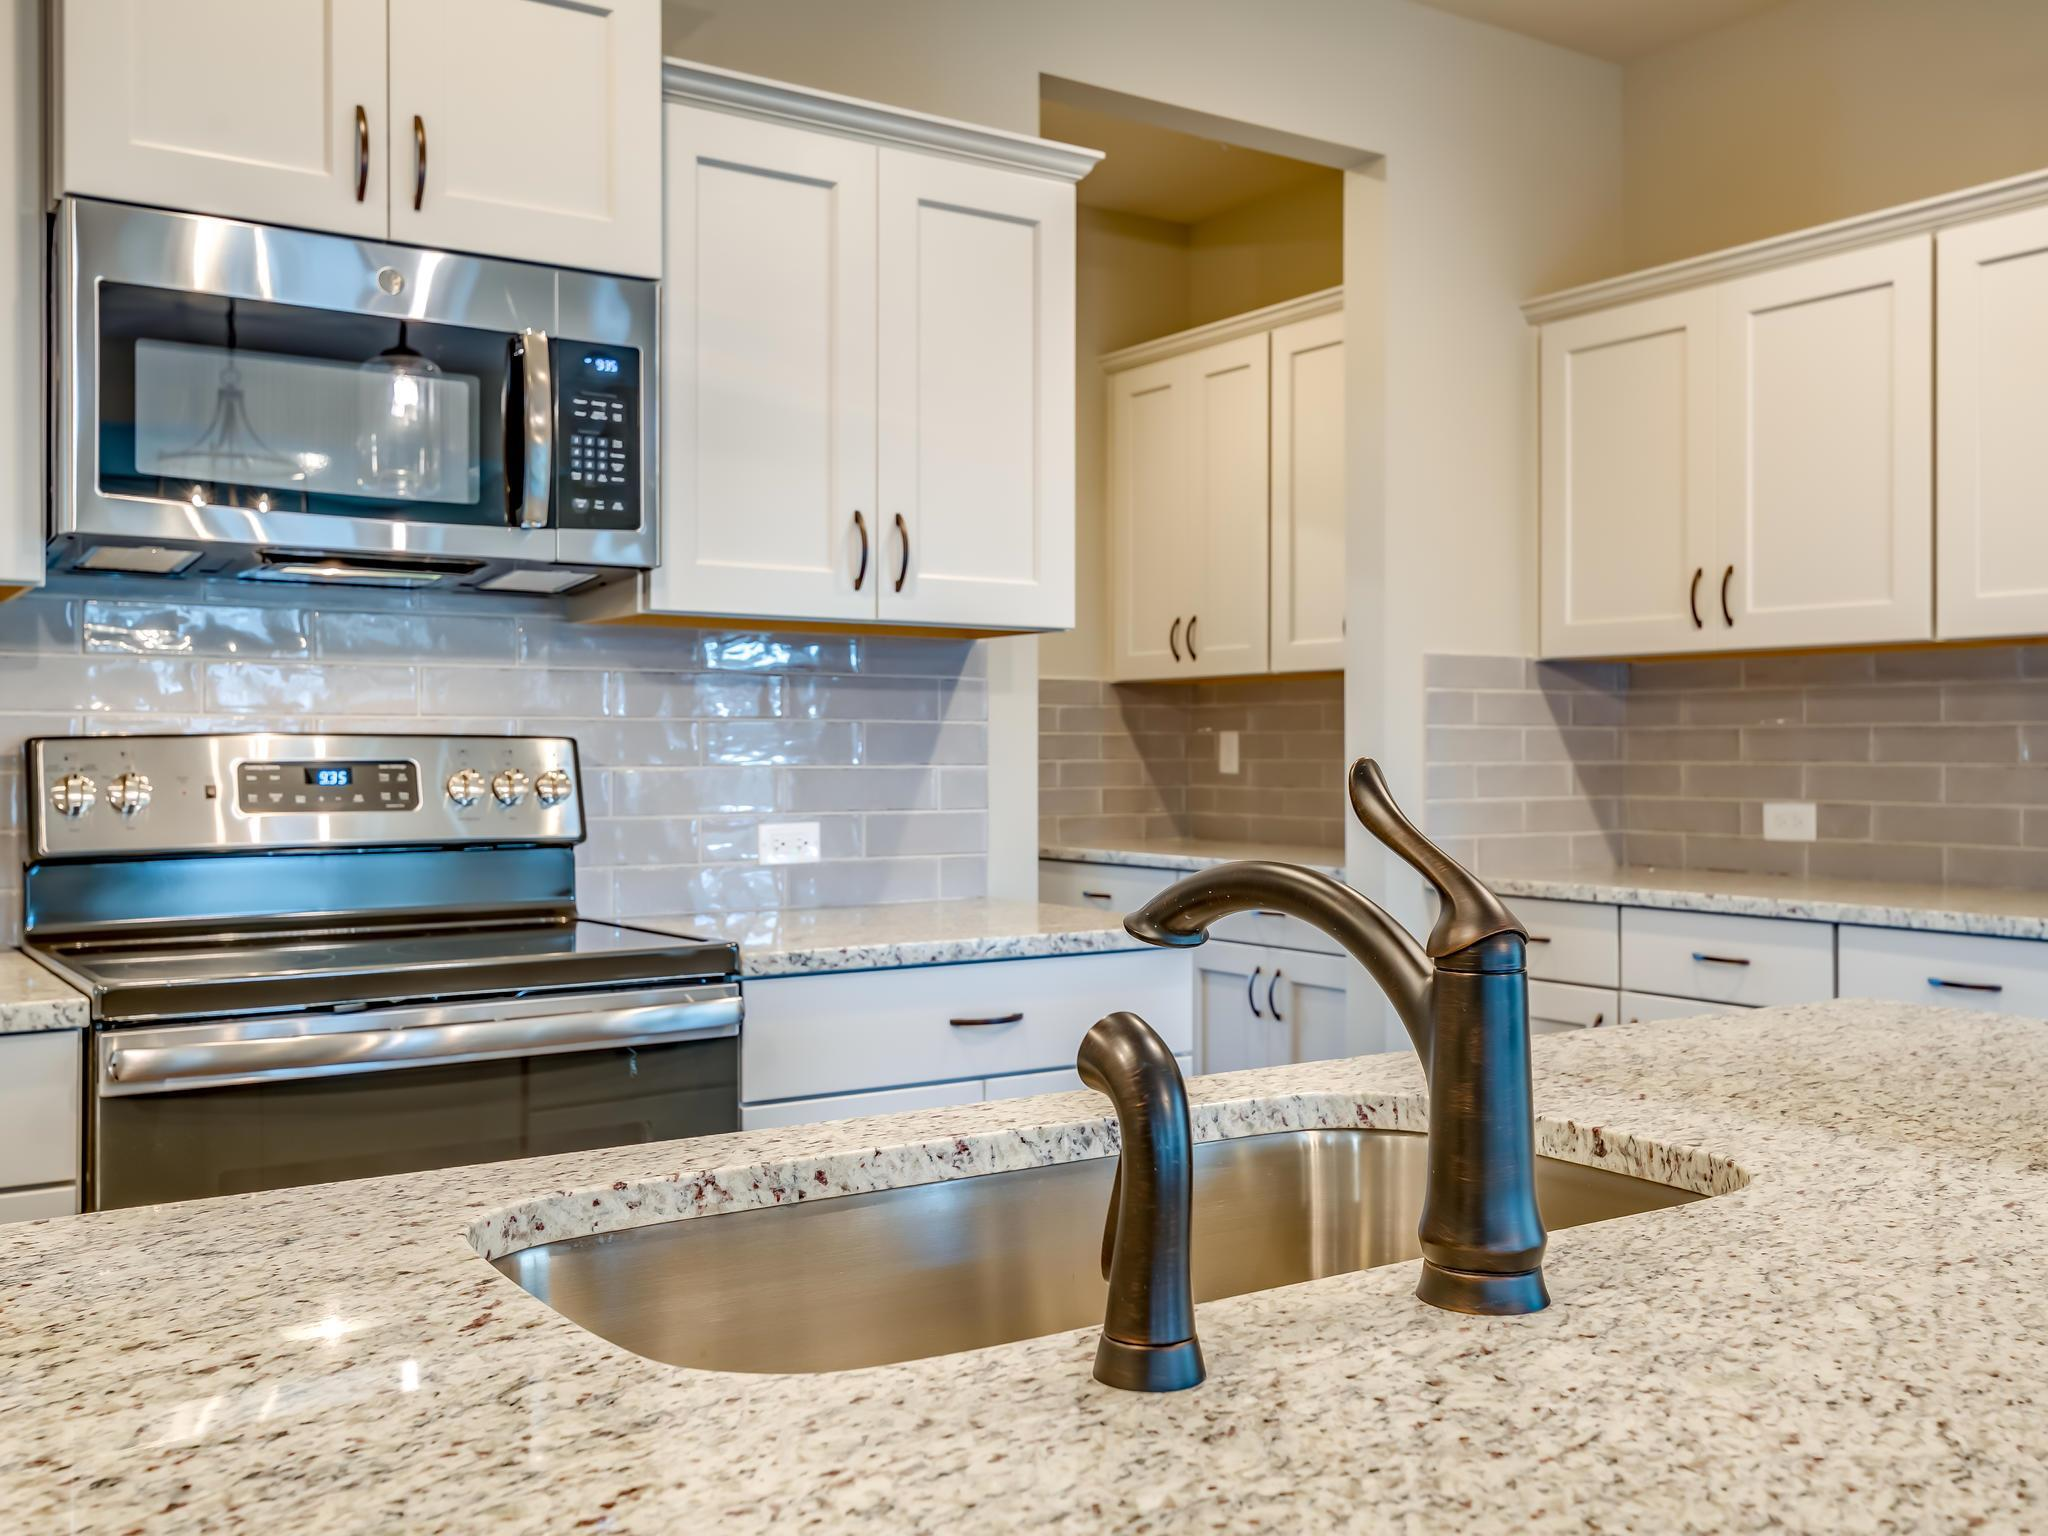 Kitchen featured in the Trenton New Park By Lowder New Homes in Montgomery, AL